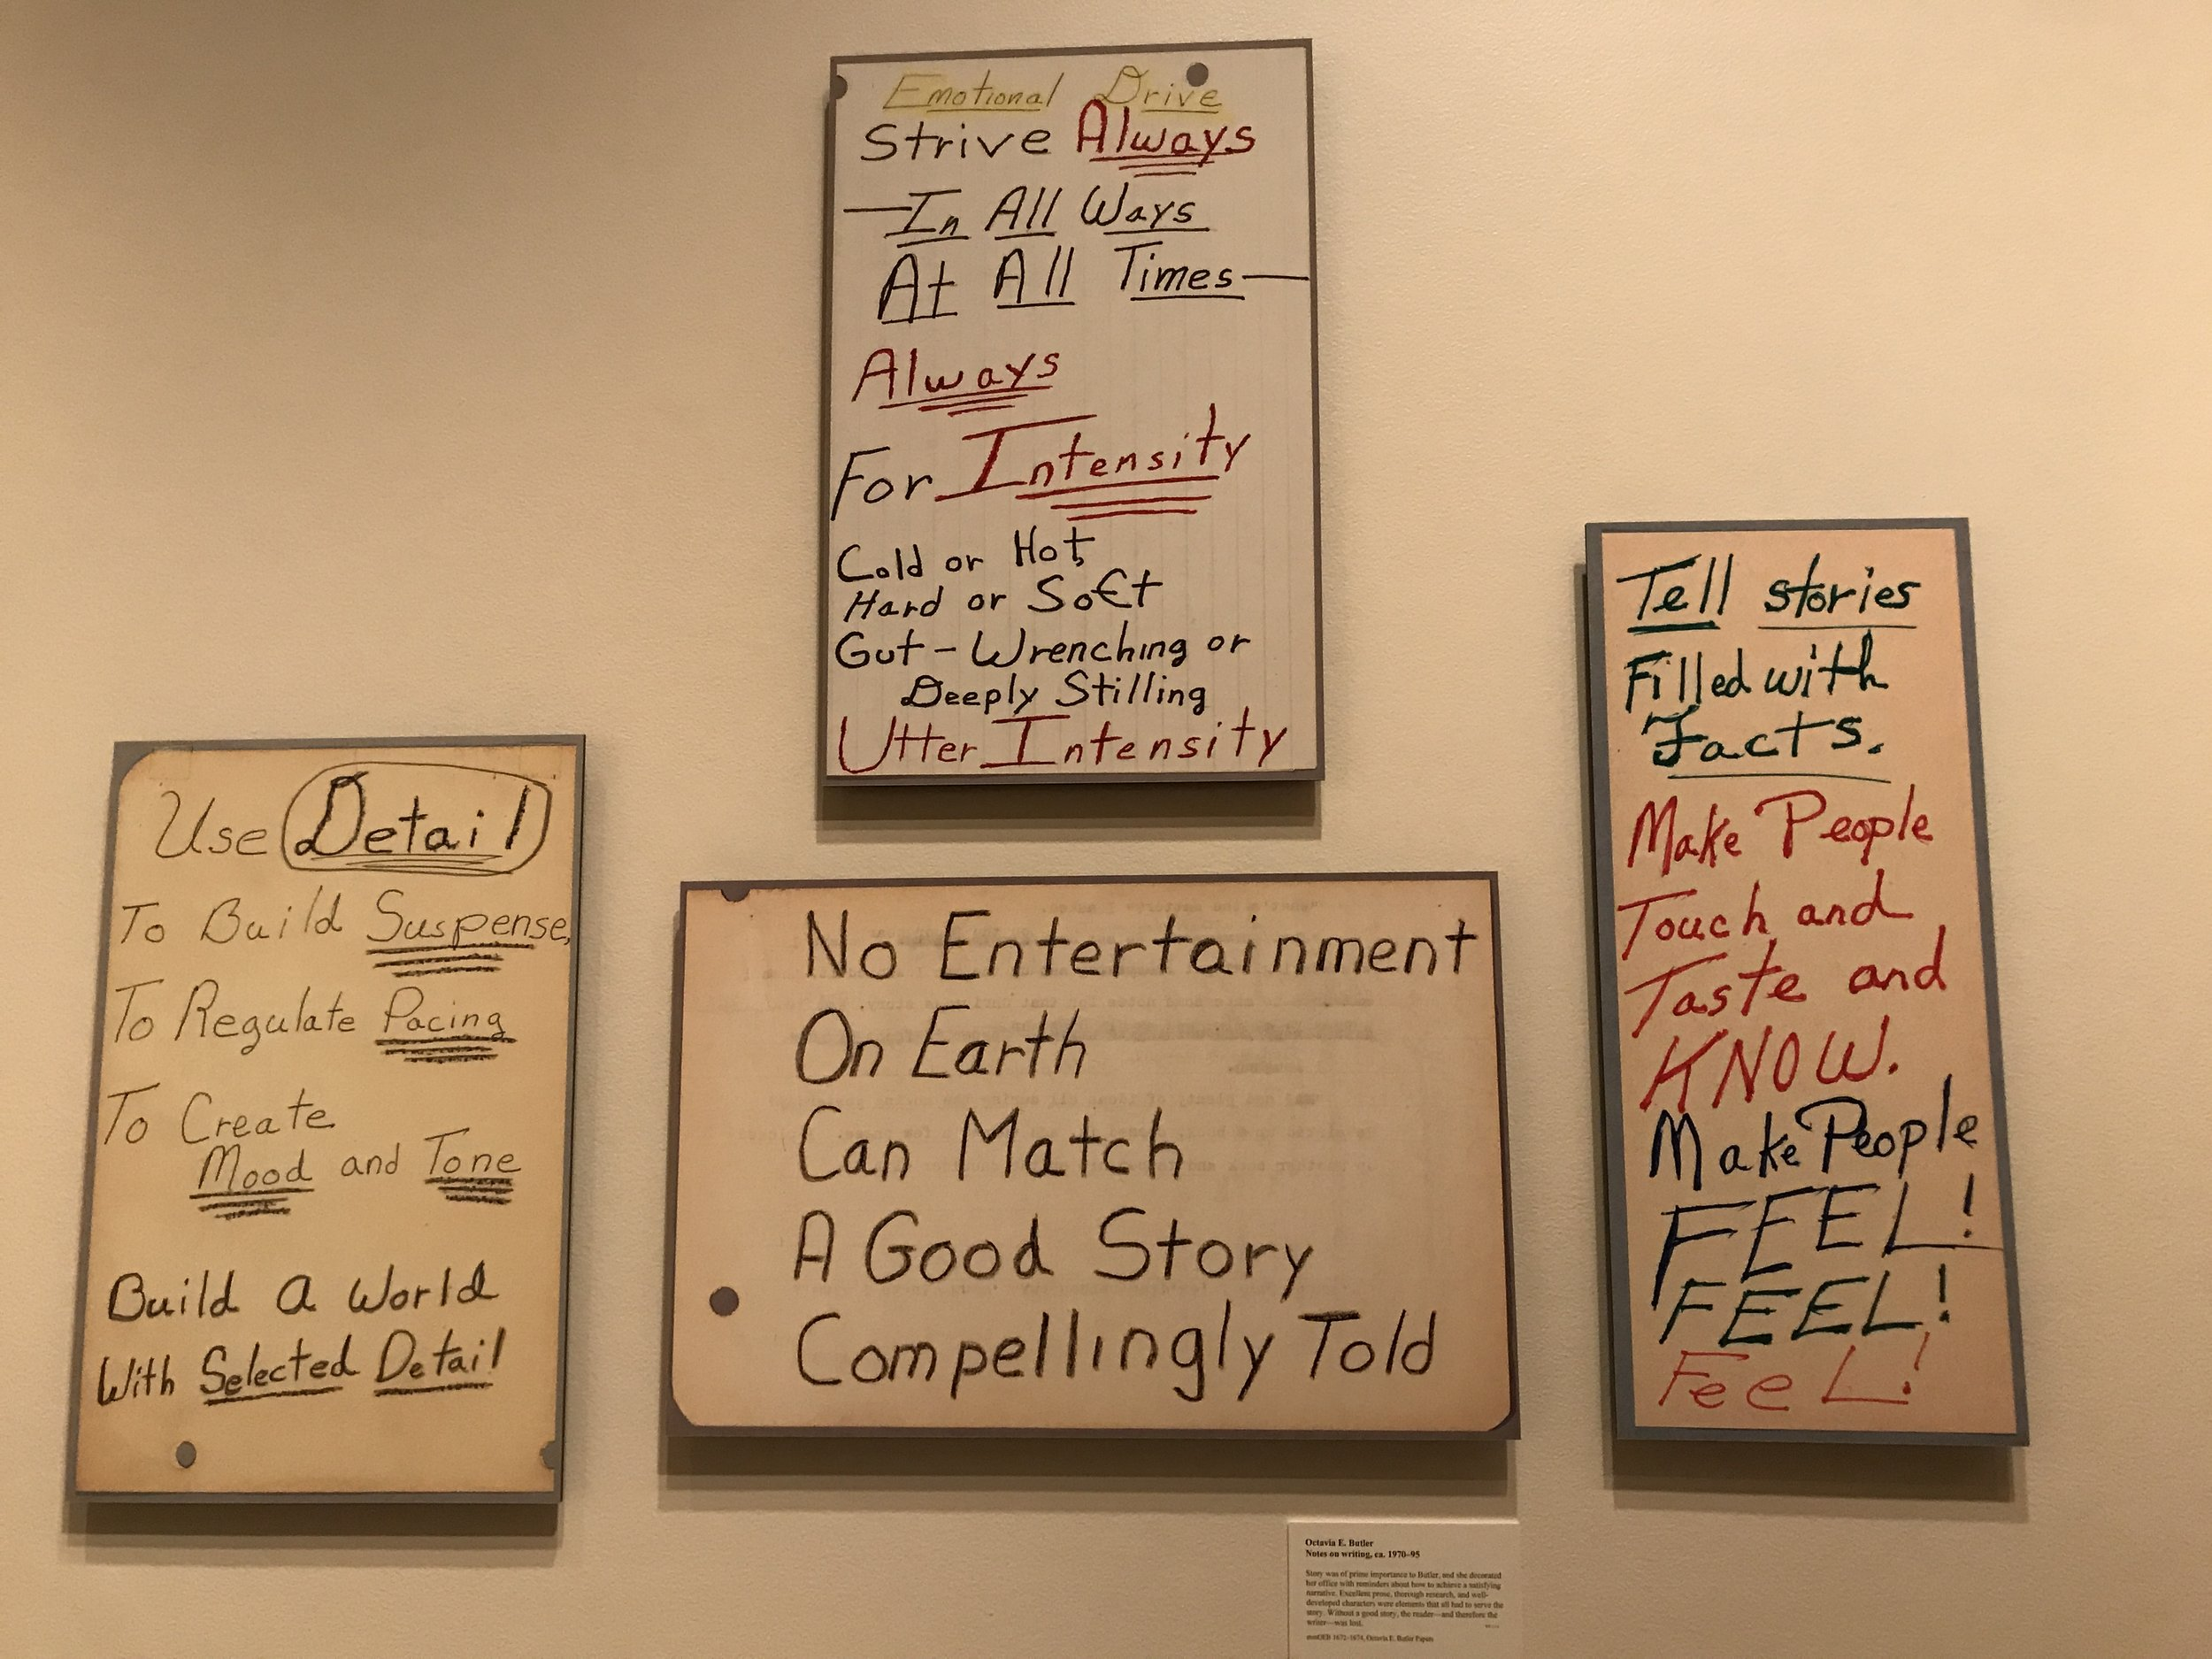 Notes on Writing by Octavia Butler from Huntington Library Exhibit                                   Photo: Lynne Azpeitia